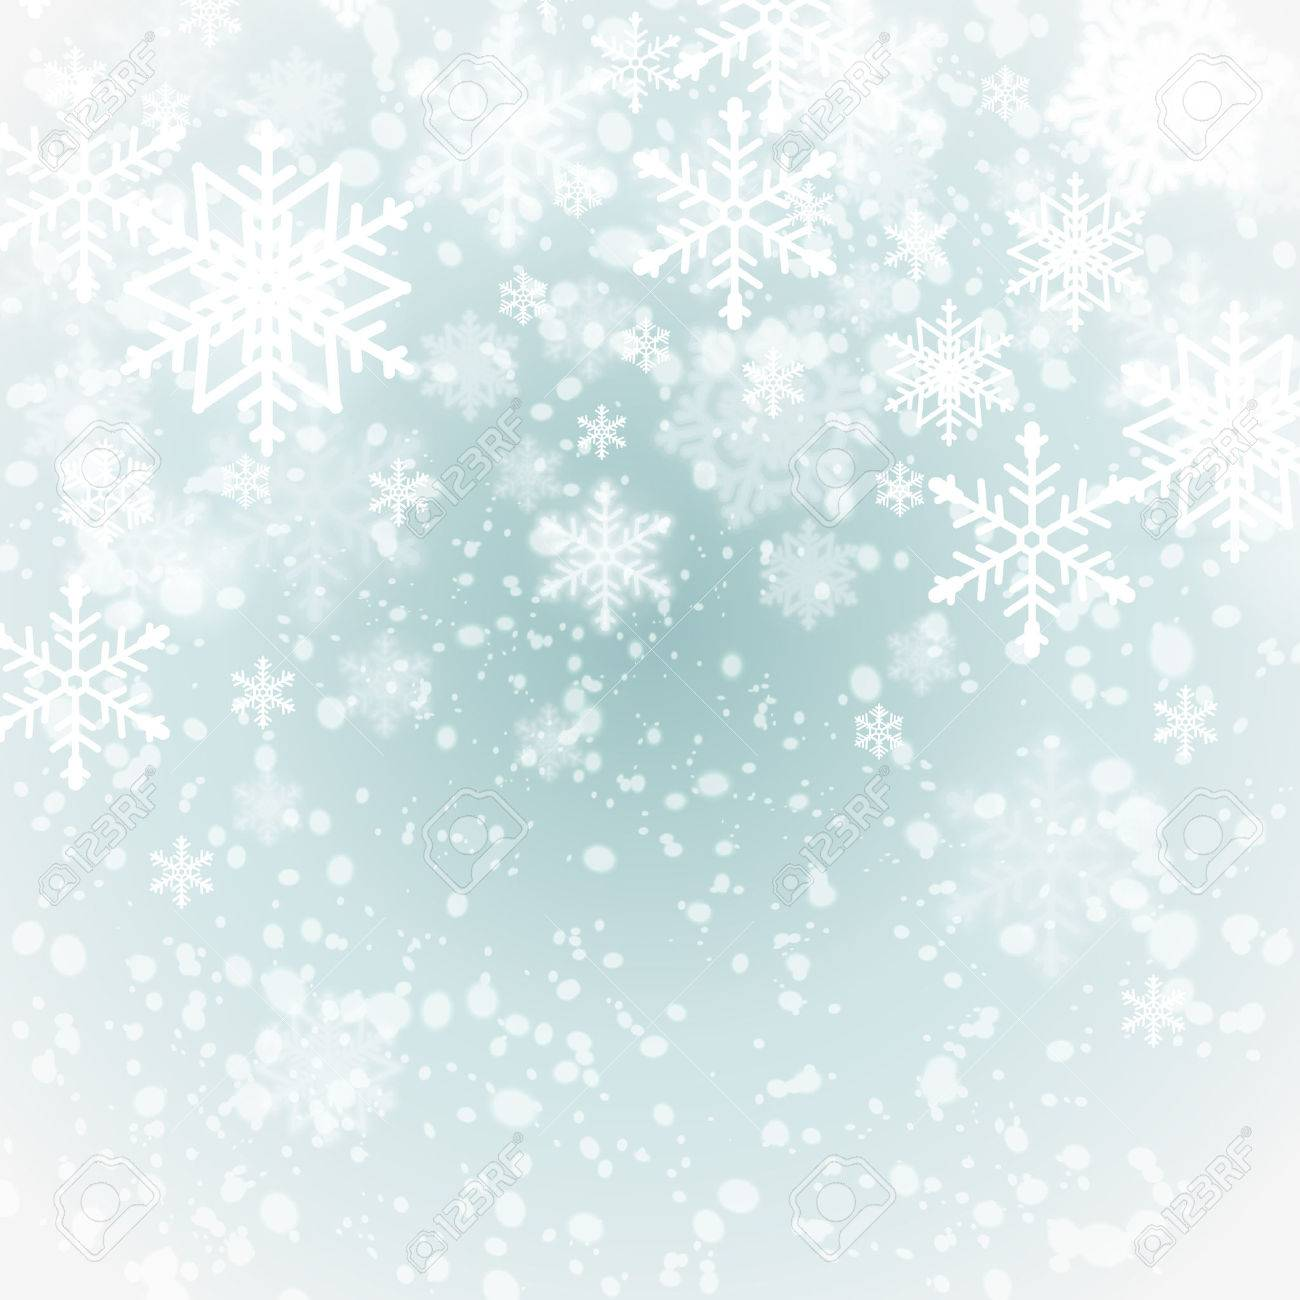 winter background with snowflakes - 33290224